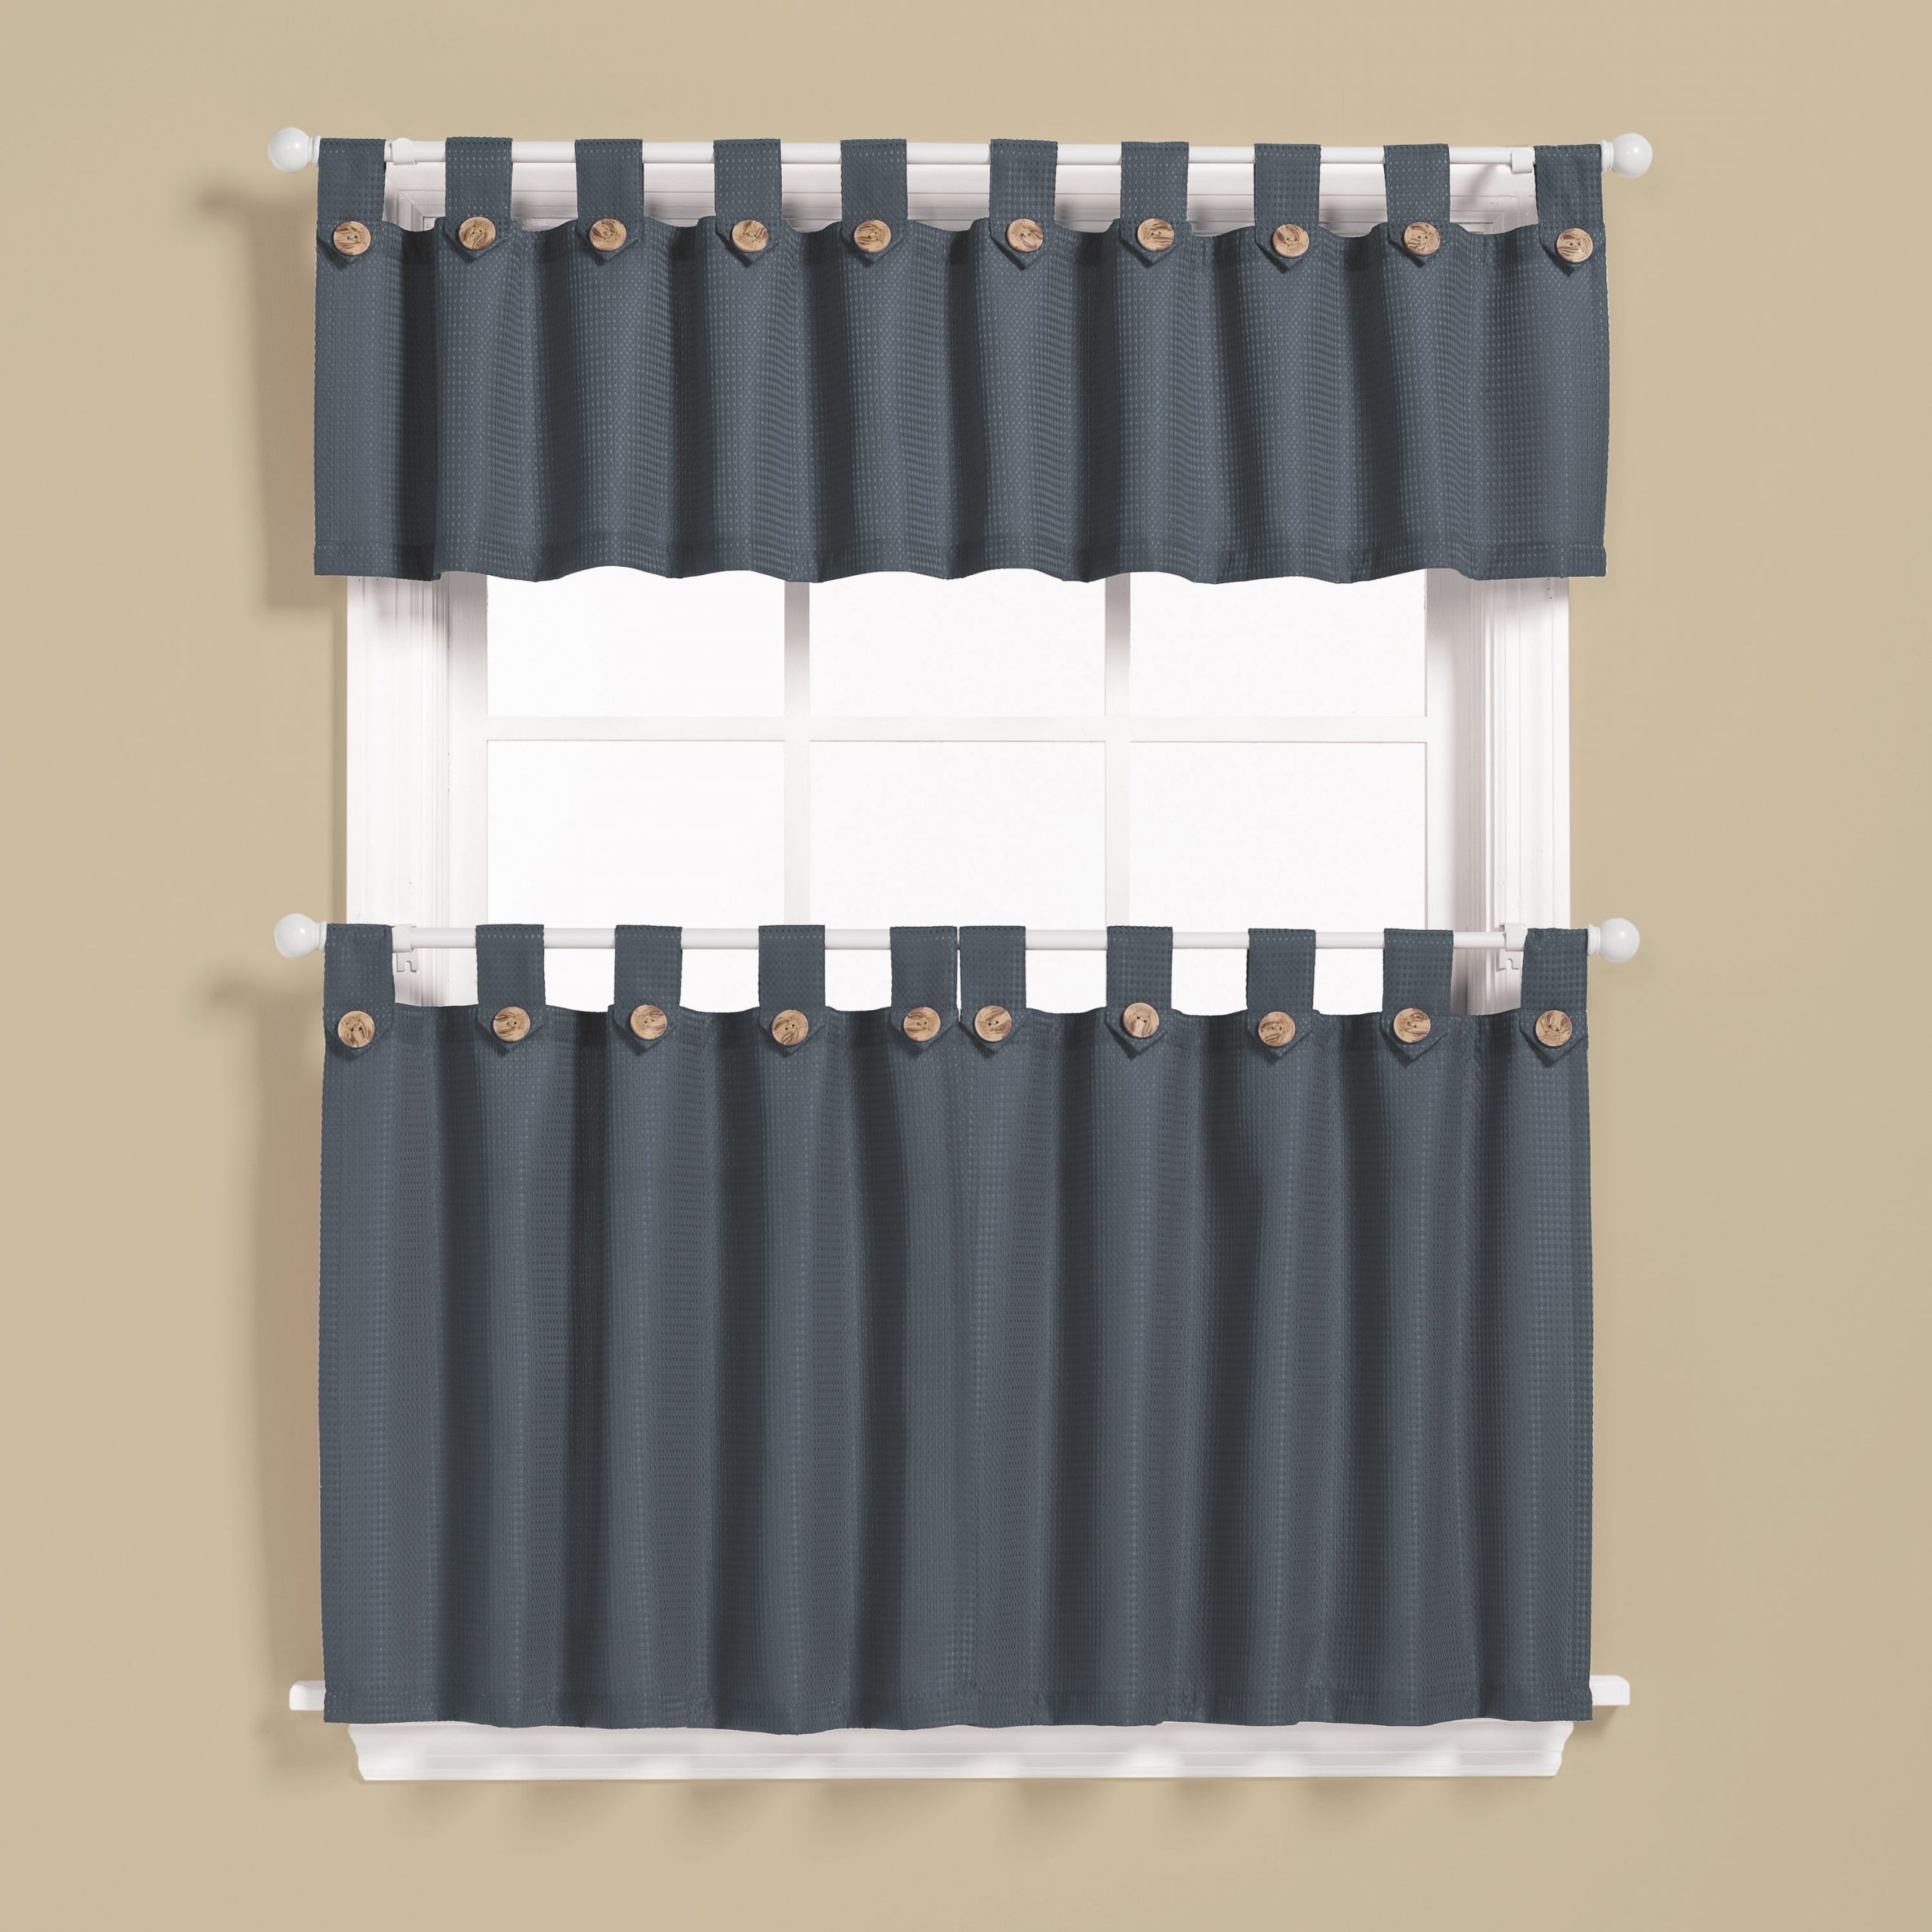 Barnyard Window Curtain Tier Pair And Valance Sets Intended For 2020 Saturday Knight Pacifica Window Curtain Tier Pair And Valance Set 36 Inch (View 14 of 20)